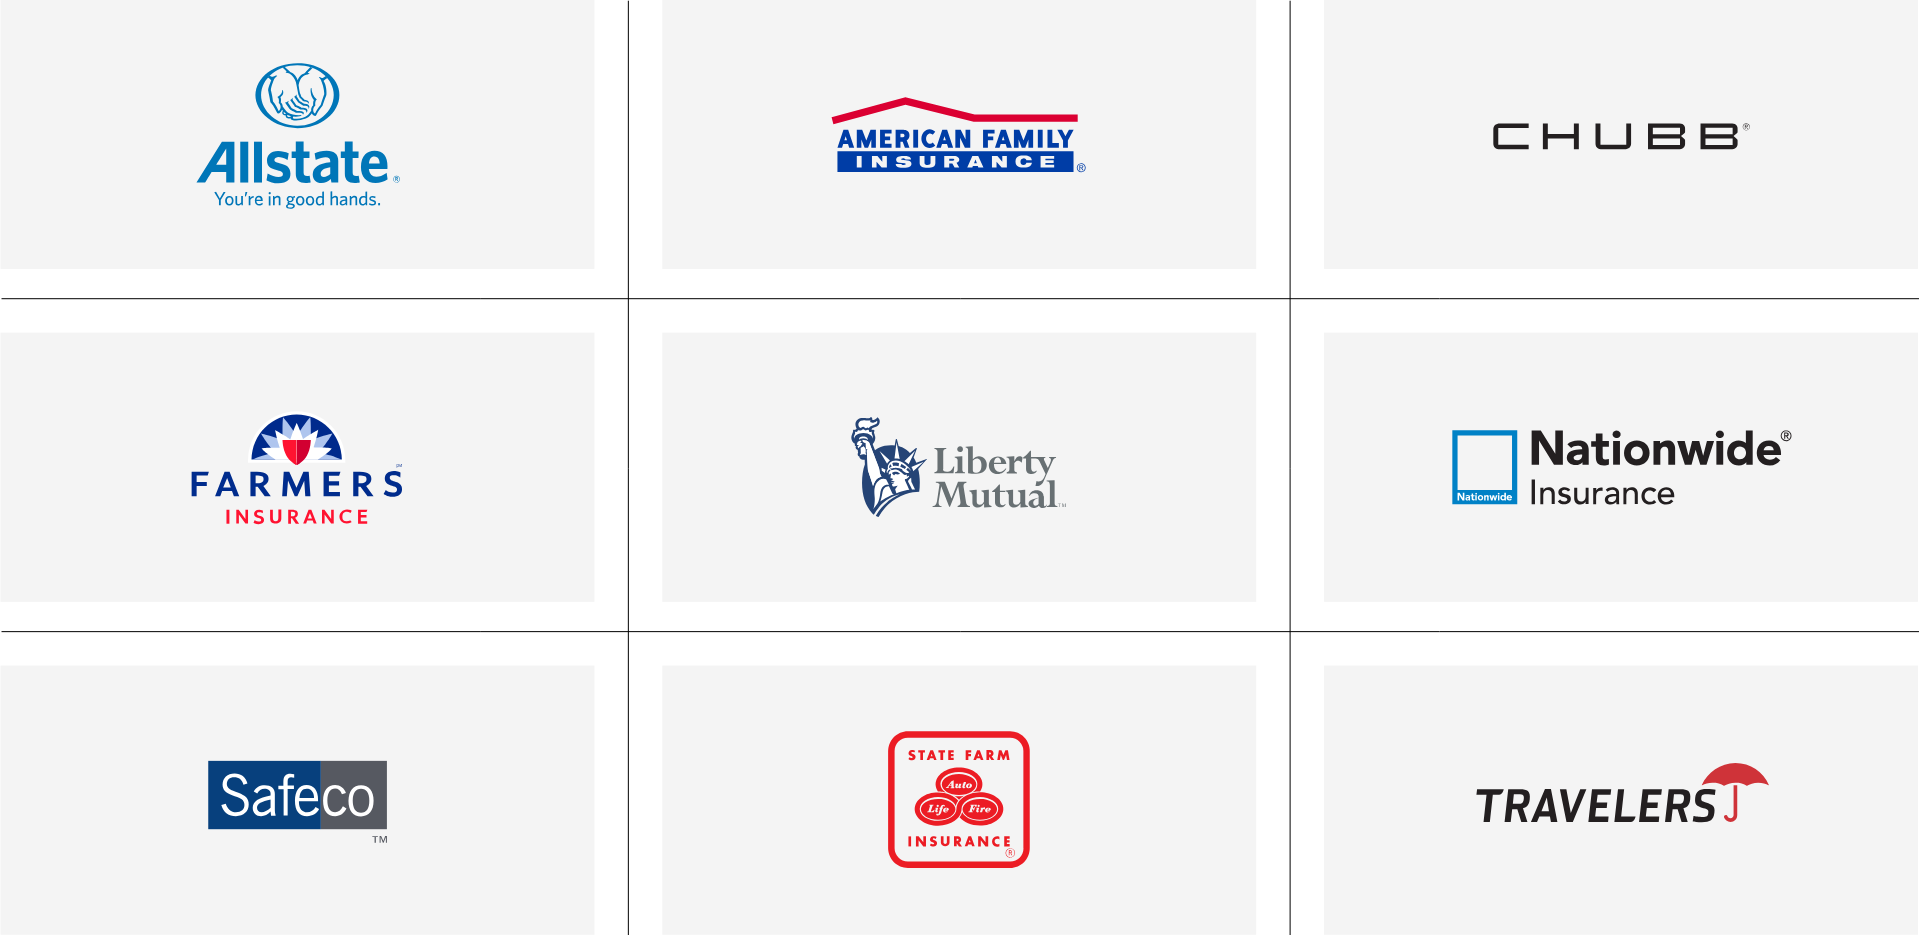 Image_Insurance-Page_Partnership-Logos.png